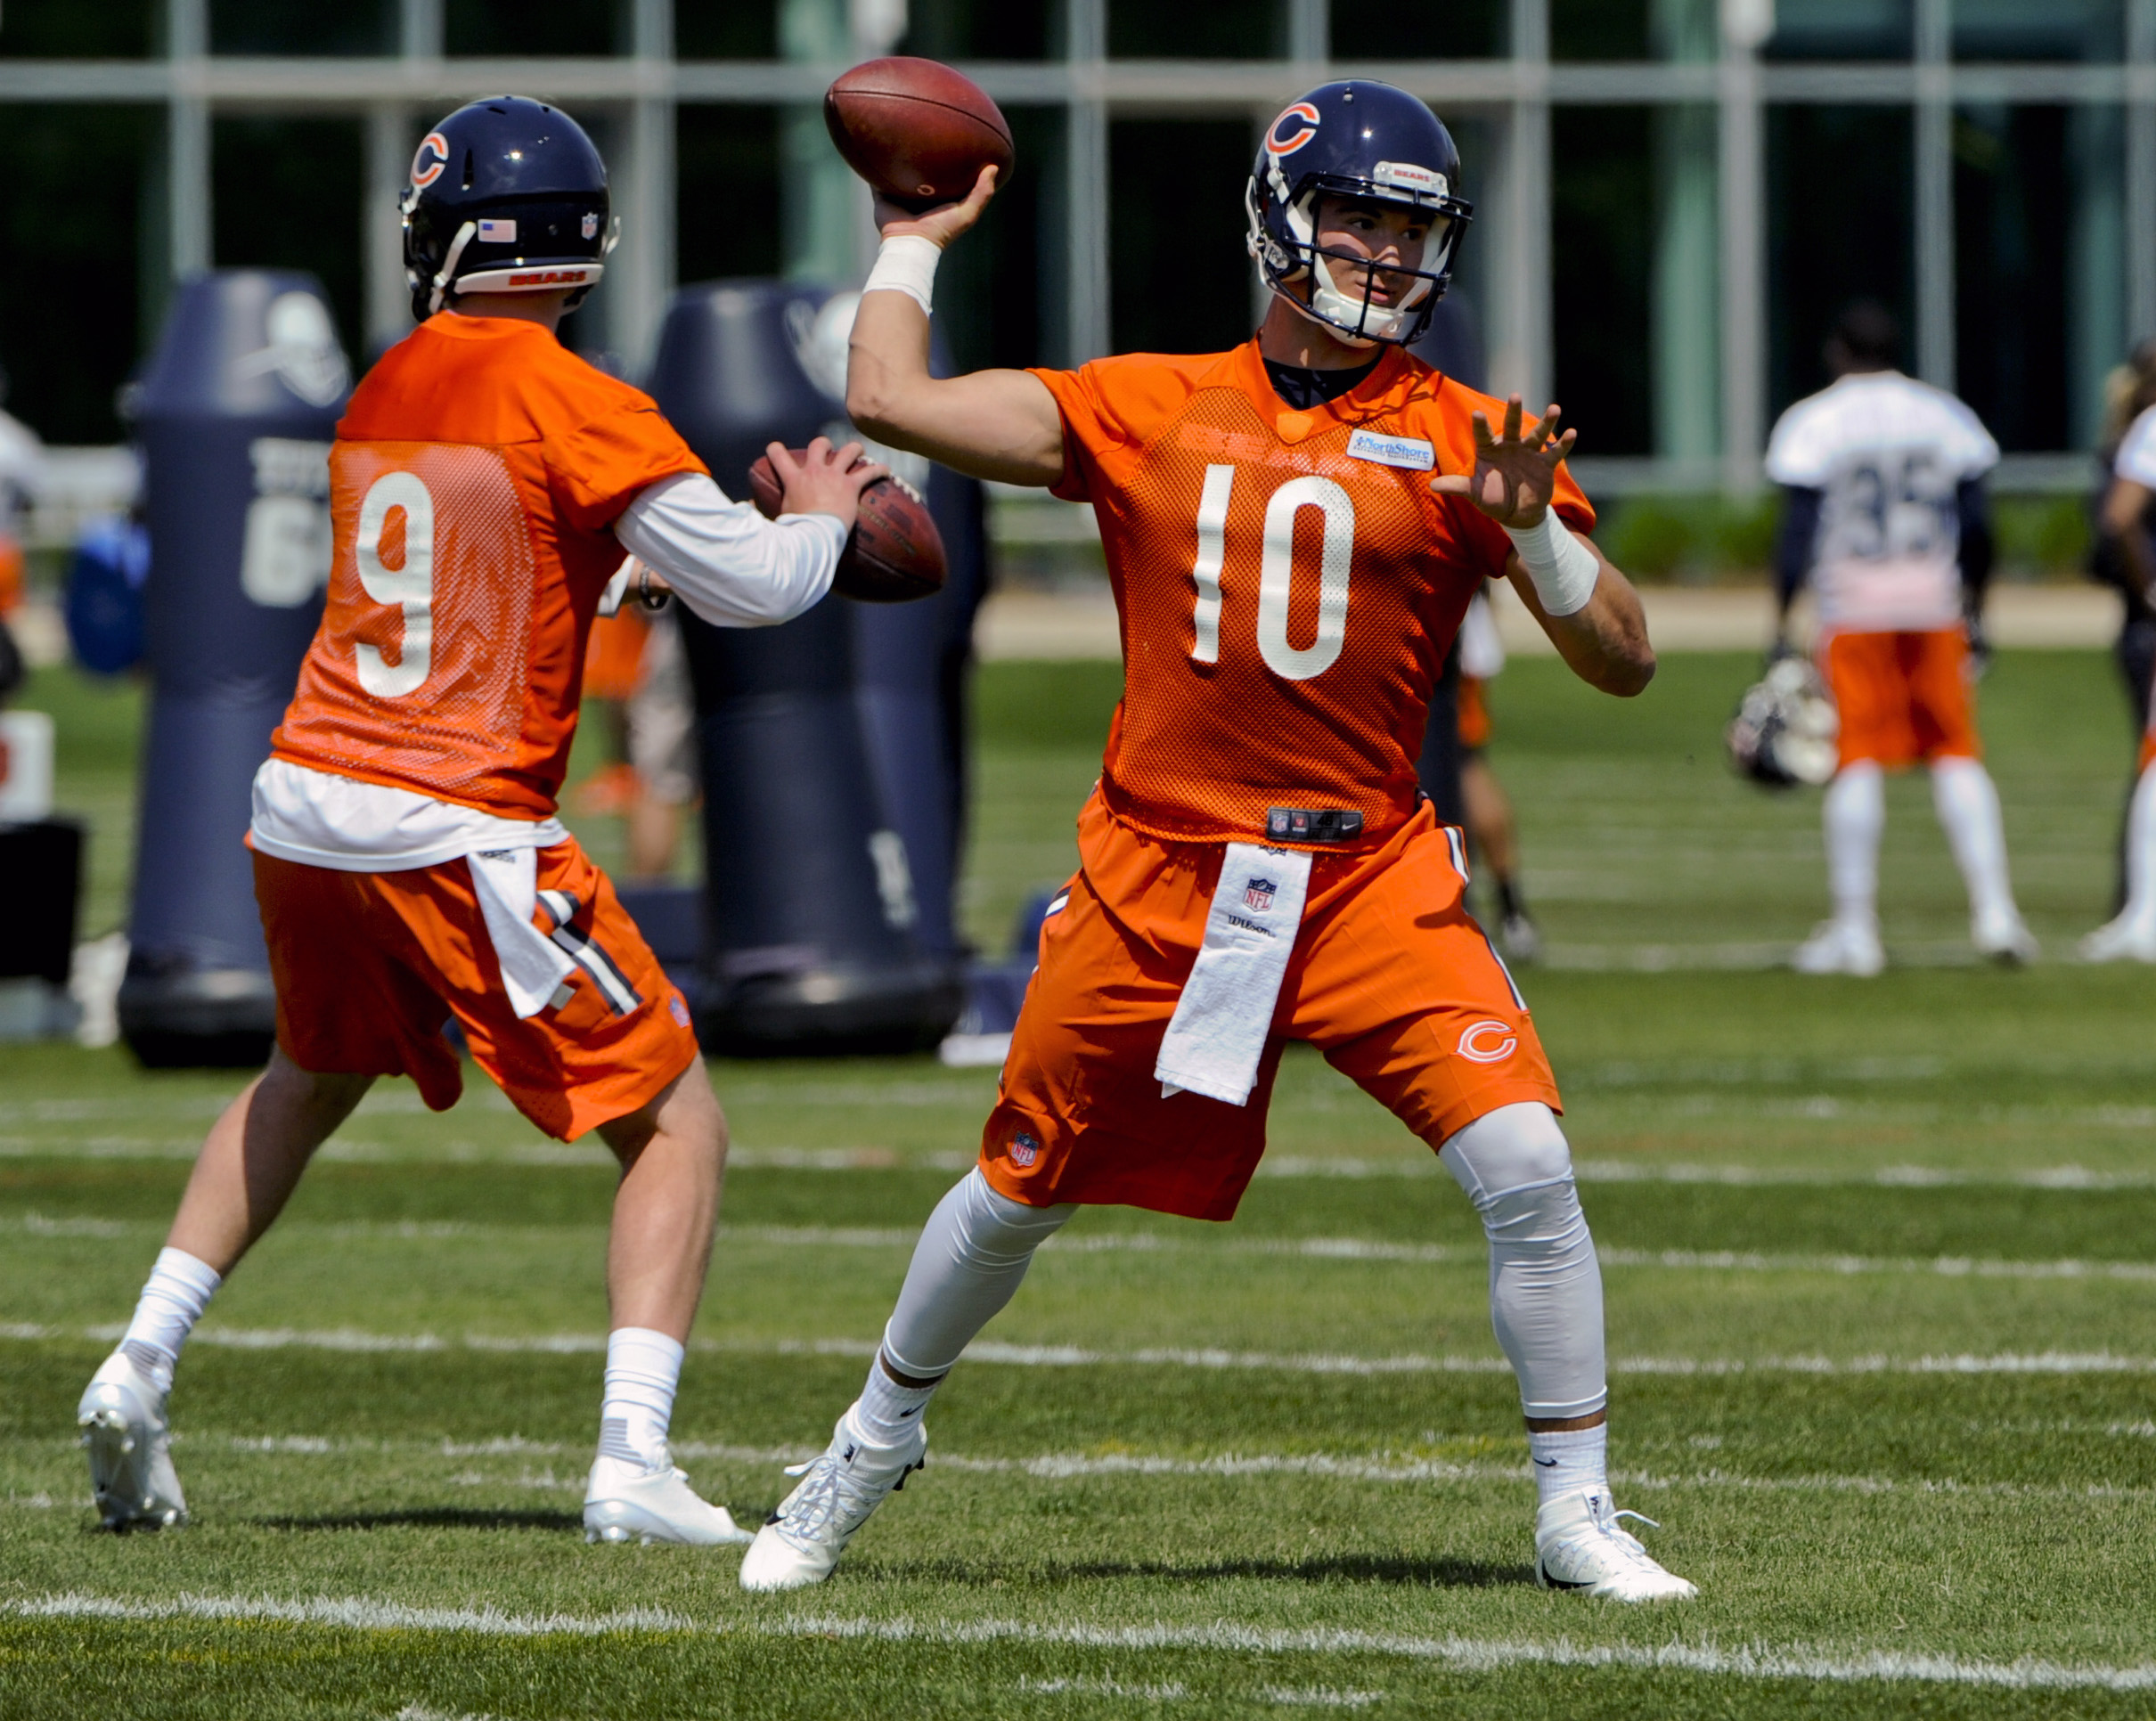 10053246-nfl-chicago-bears-rookie-minicamp-1